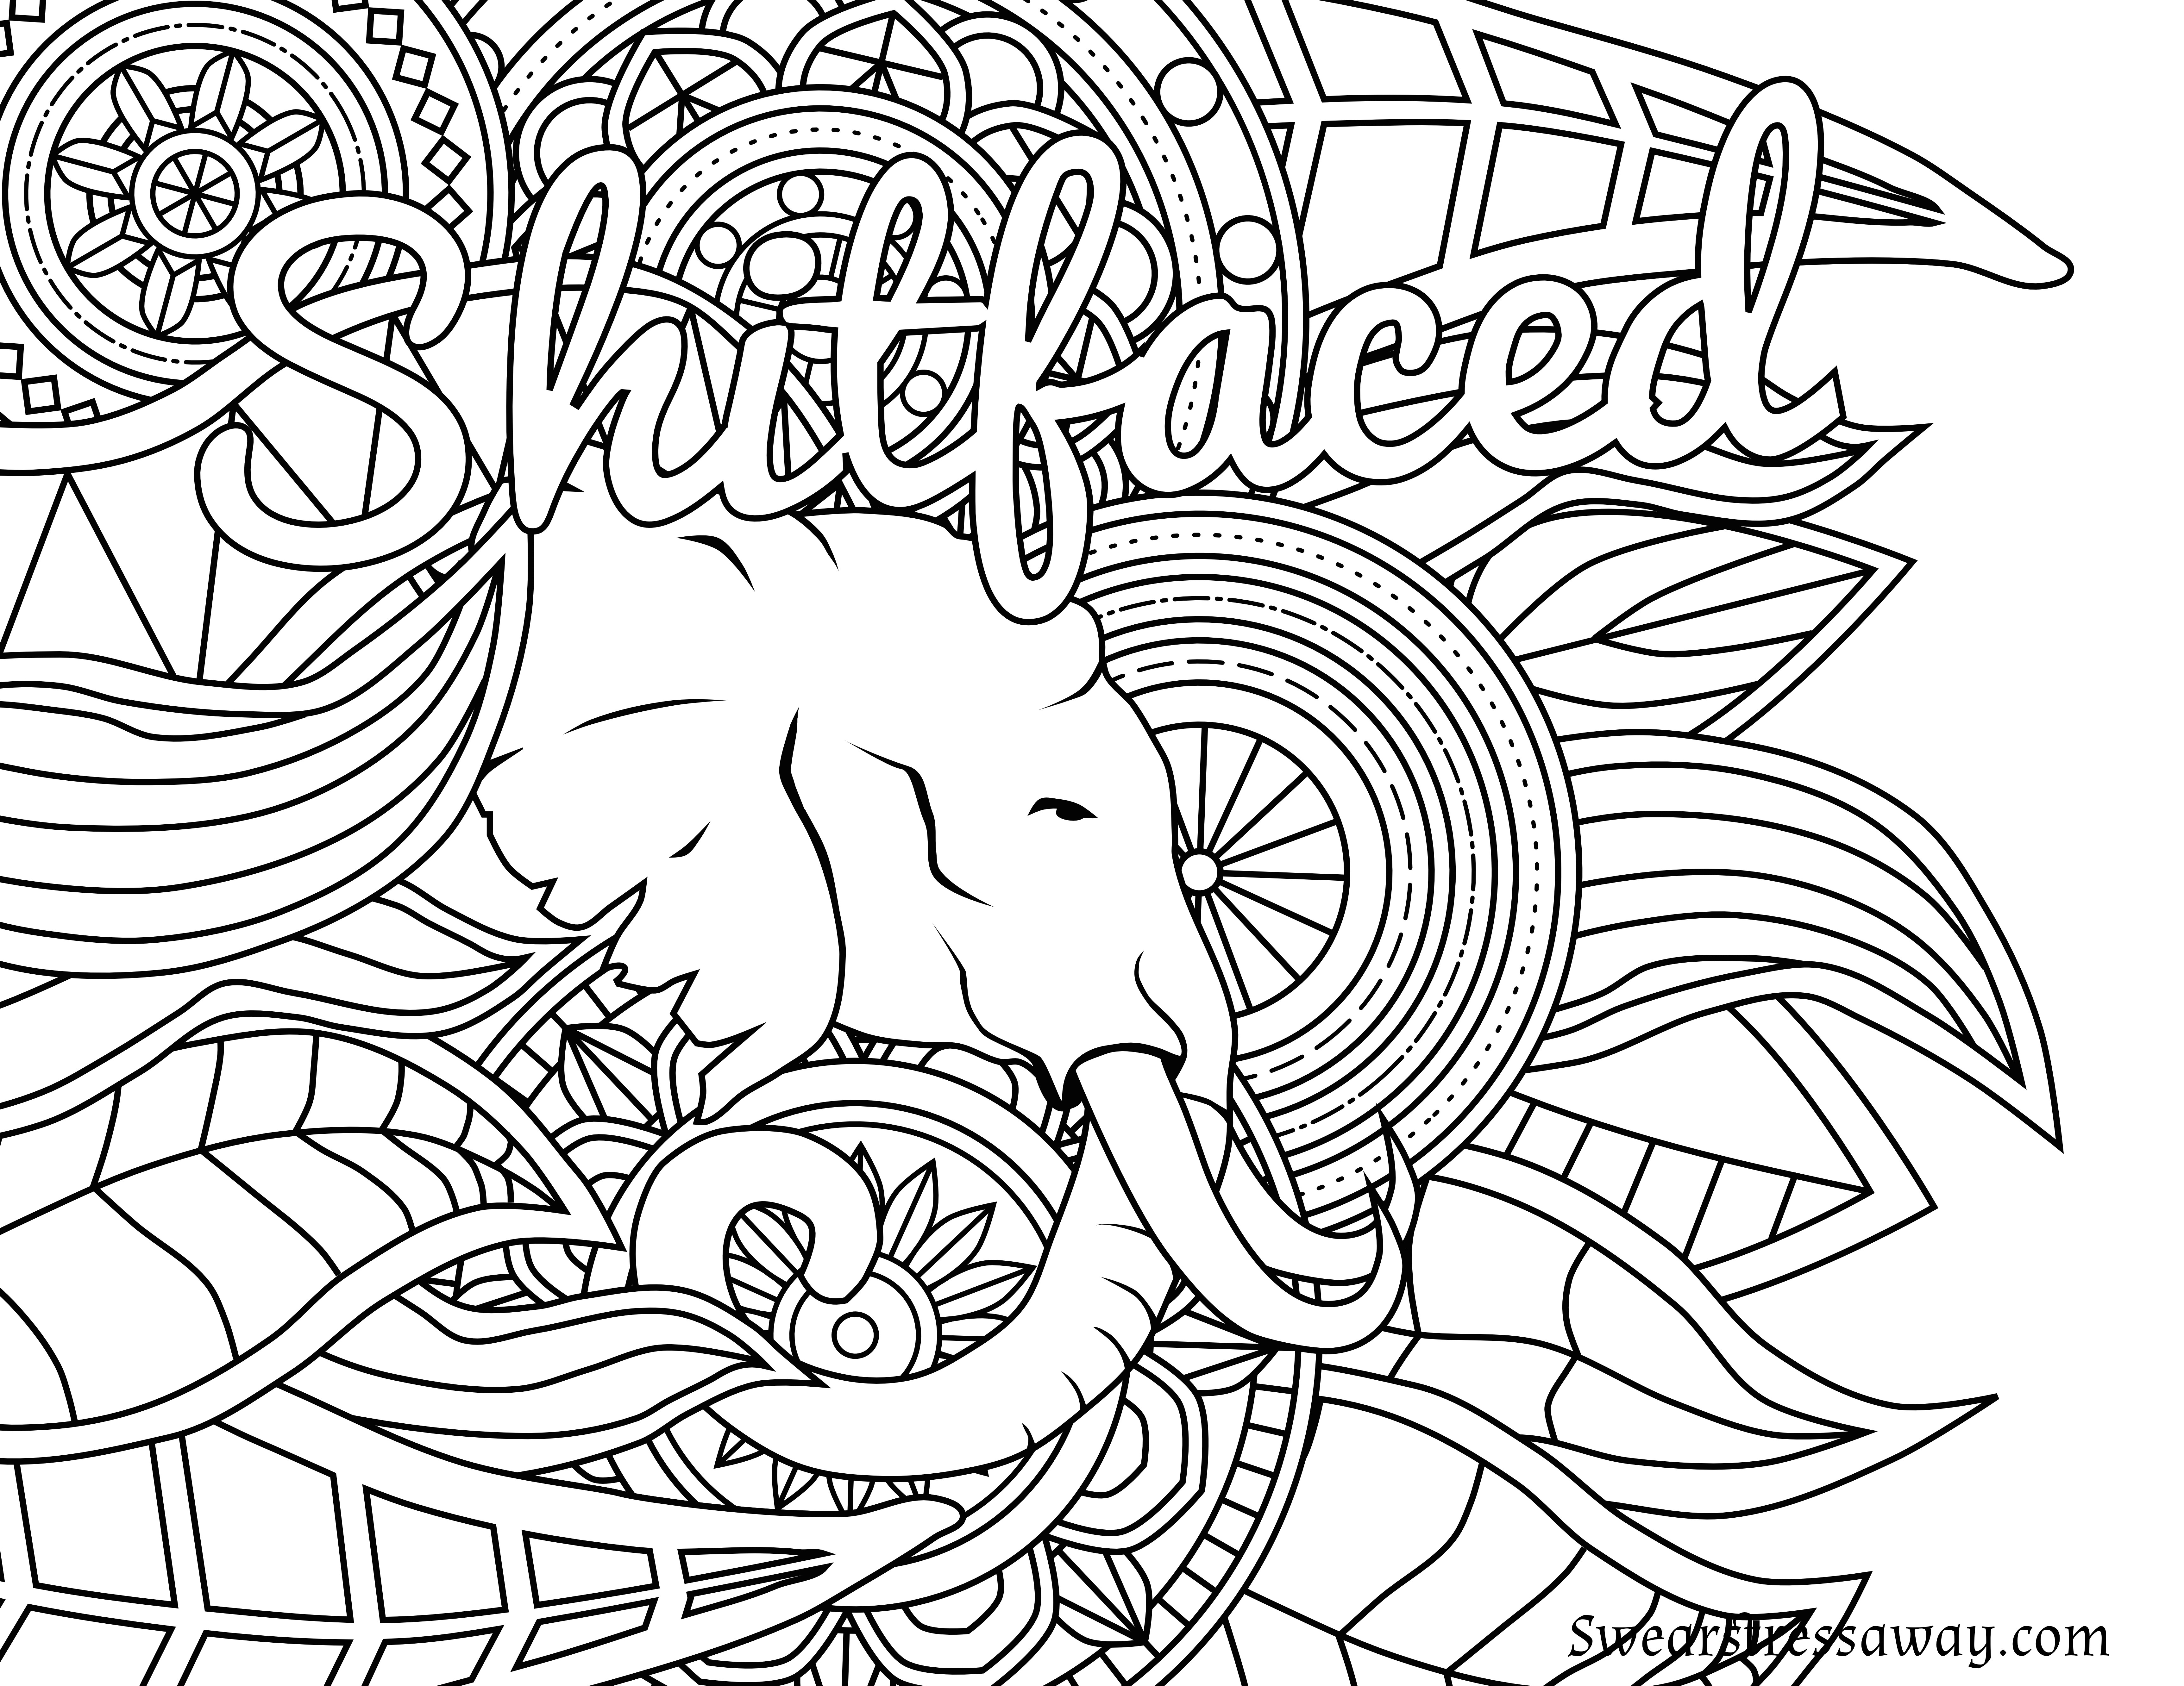 Free Printable Coloring Pages For Adults Only Swear Words  Free Printable Coloring Page Shitfaced Swear Word